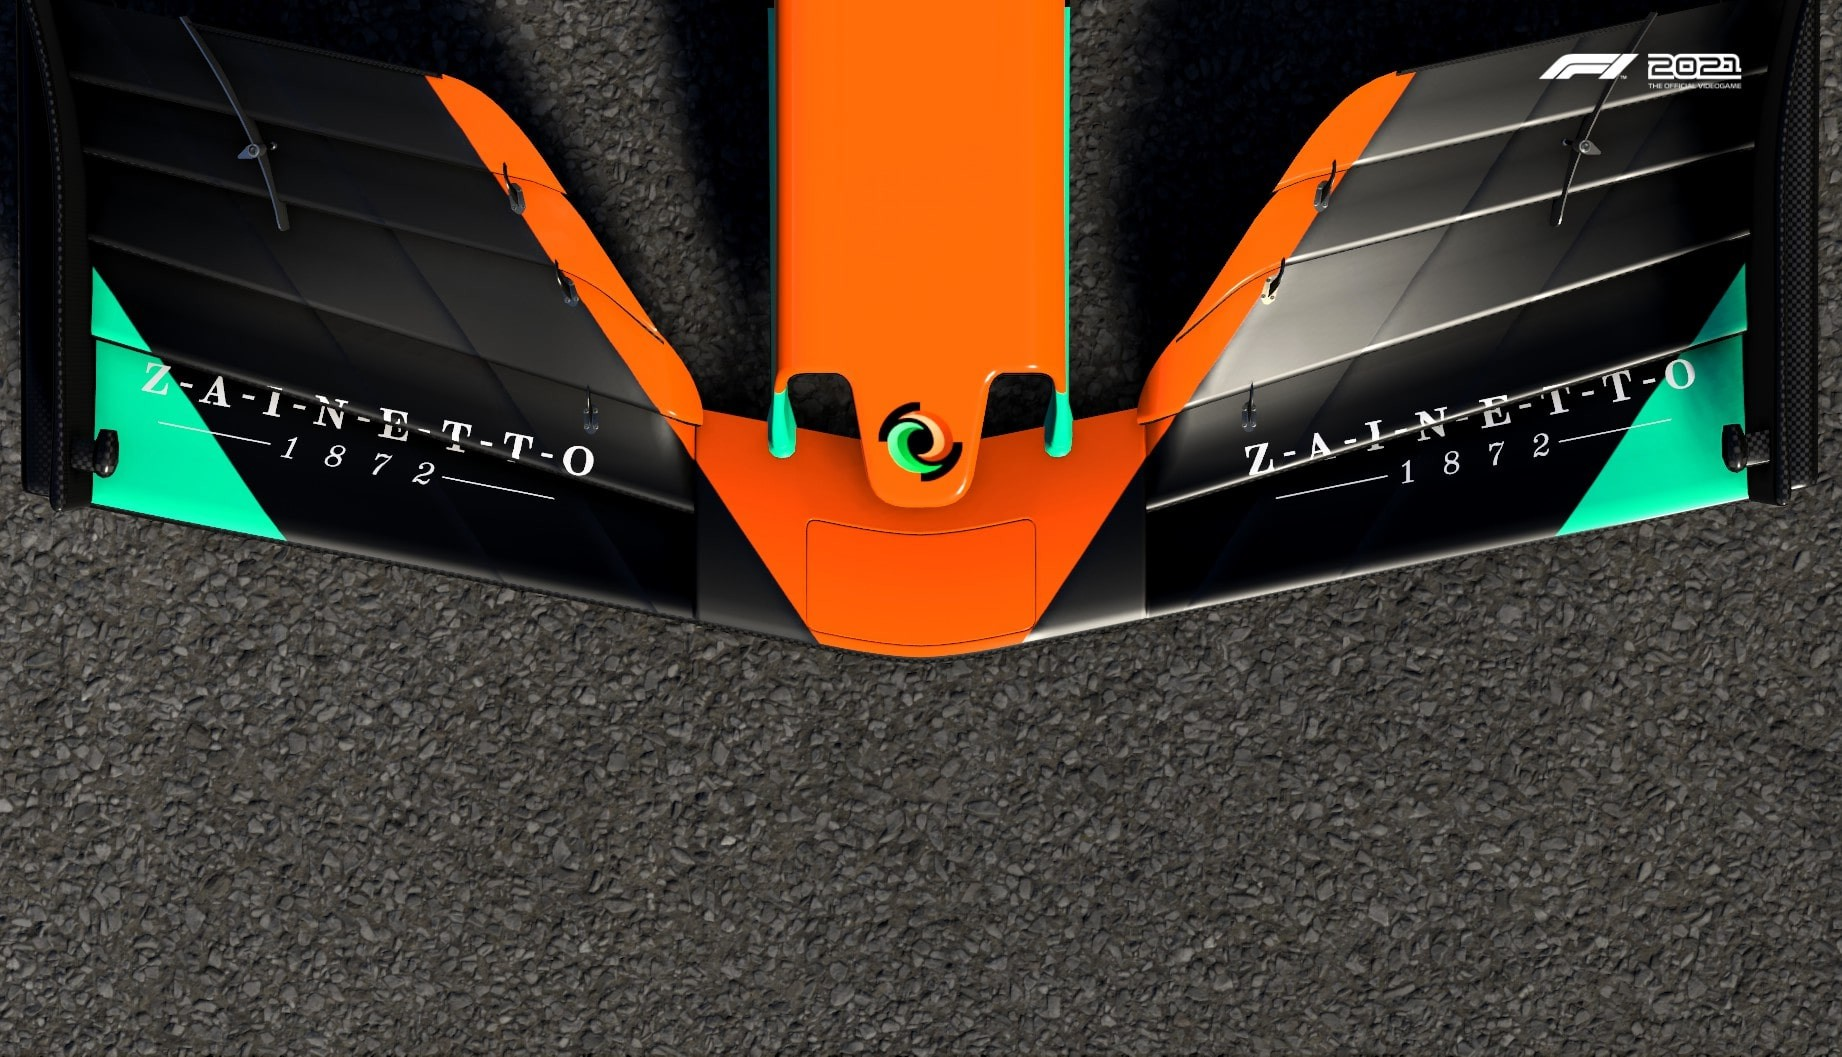 An image of the Zainetto logo on the front wing of an F1 car in F1 2021.